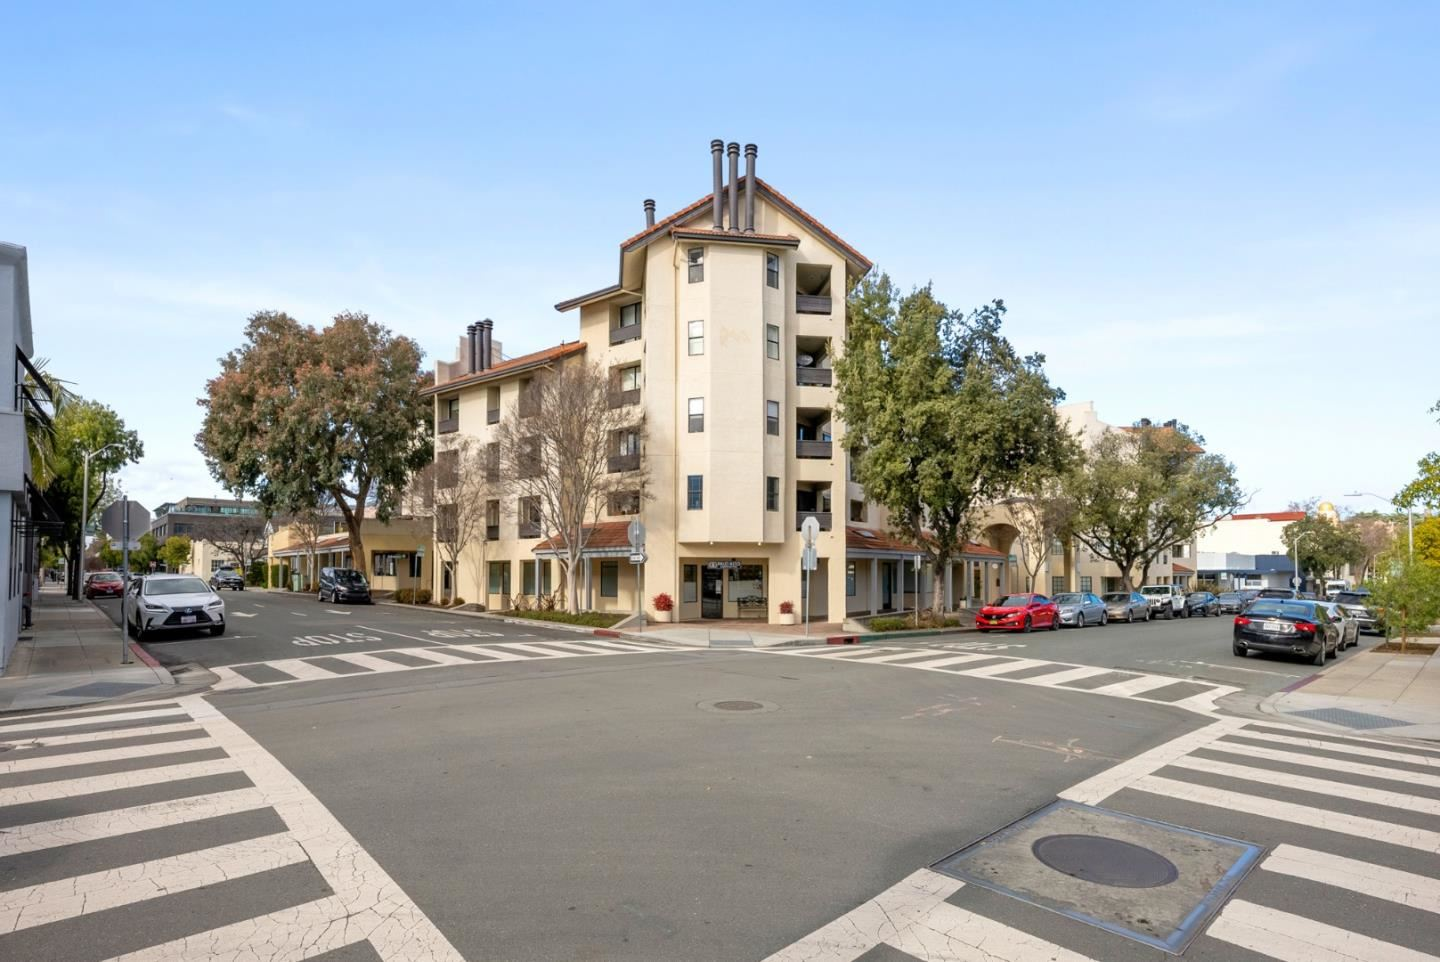 Photo for 165 Forest AVE 2A #2A, PALO ALTO, CA 94301 (MLS # ML81829325)